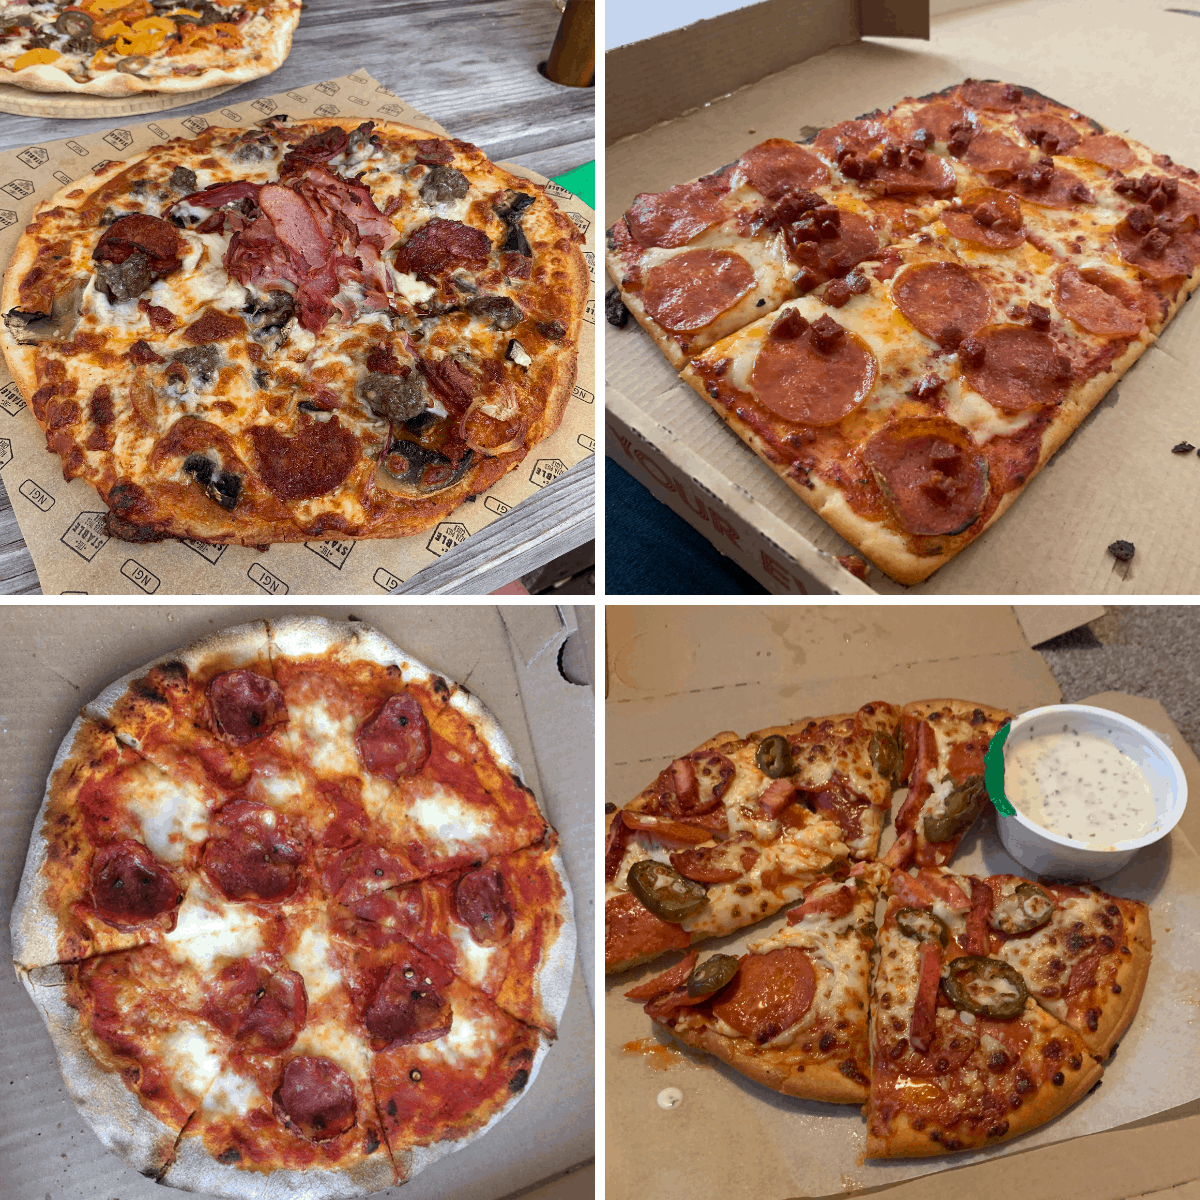 gluten free pizza deliveries in the uk